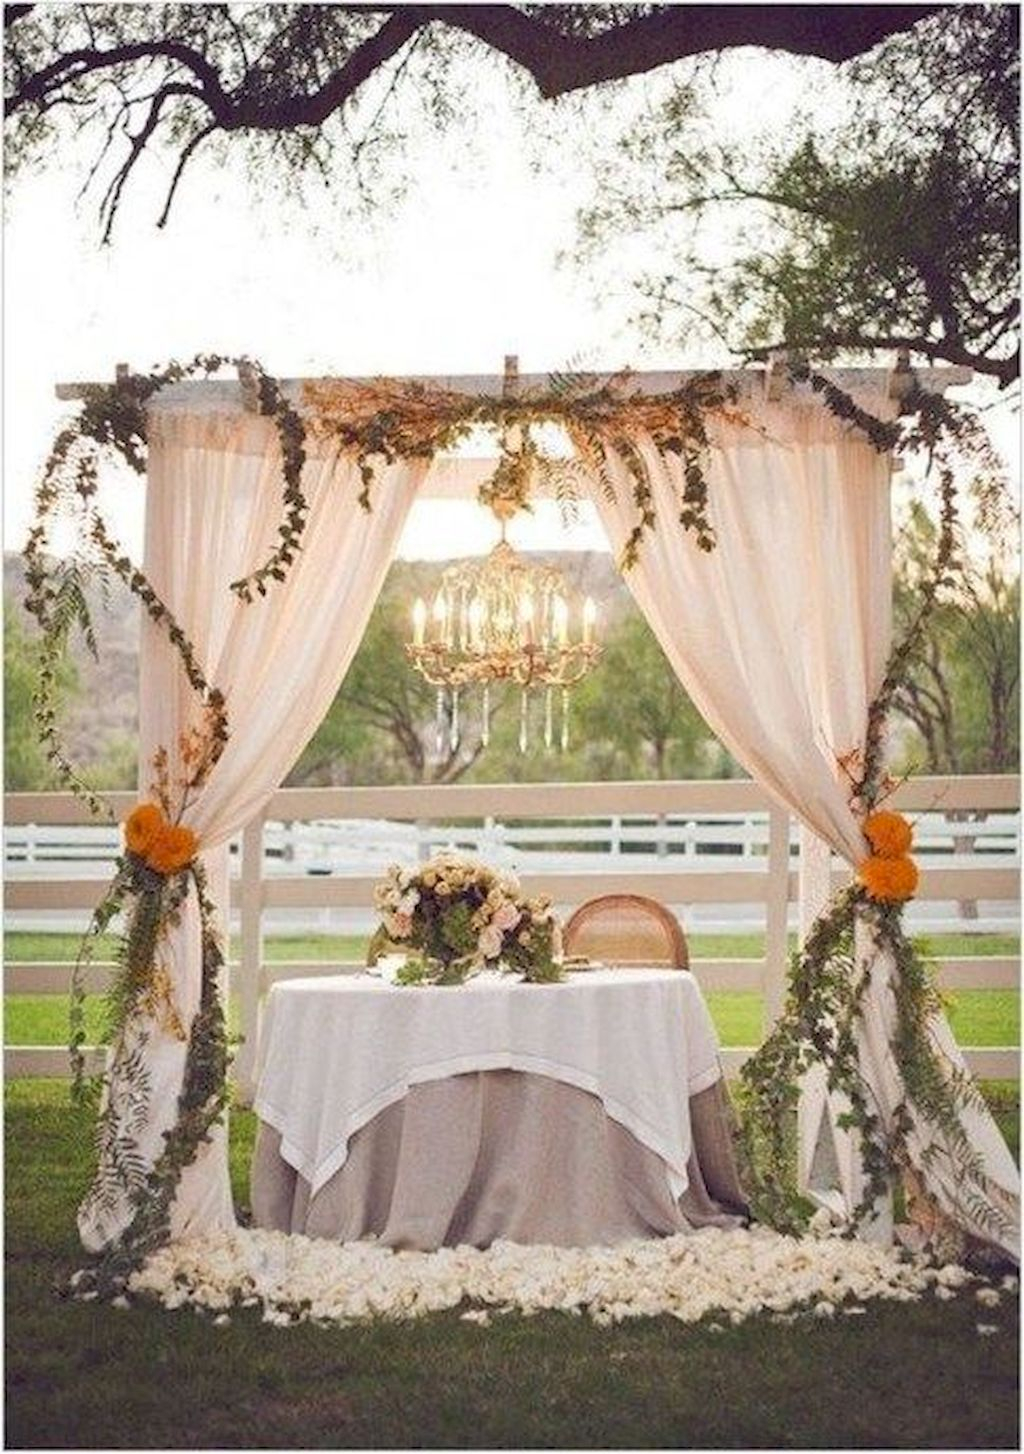 42 Inspiring Backyard Wedding Decor Ideas Carrebianhome for 11 Awesome Concepts of How to Improve Backyard Wedding Decoration Ideas